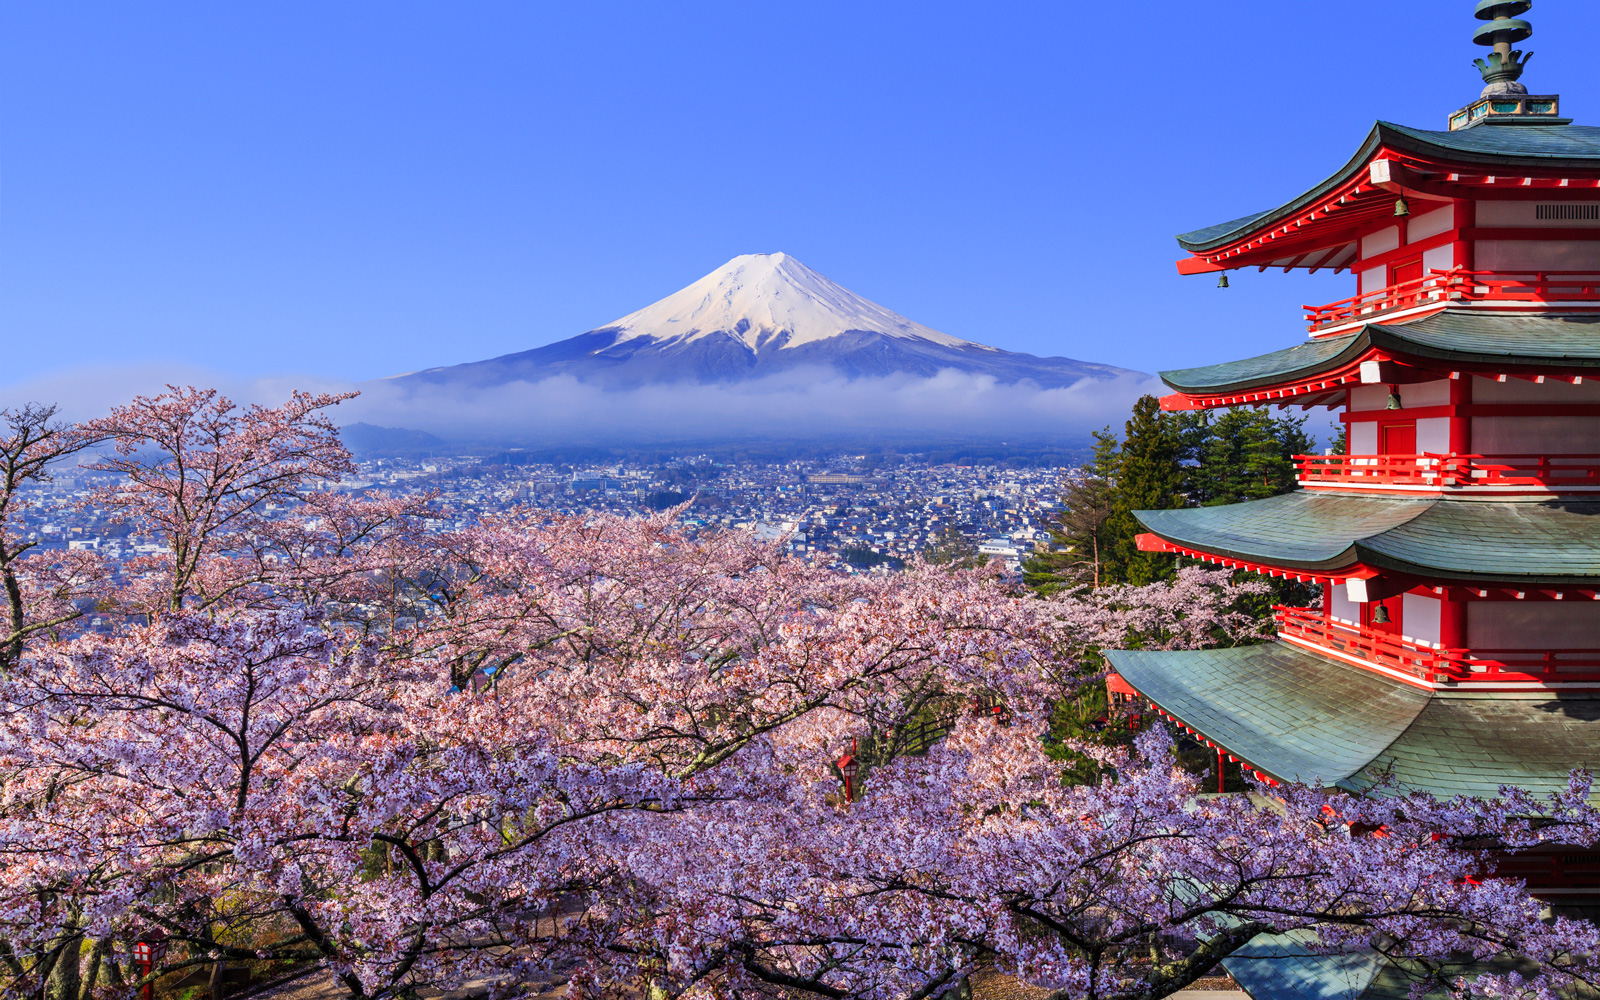 Japan Cherry Blossom Festival 2018: Where and When to Visit